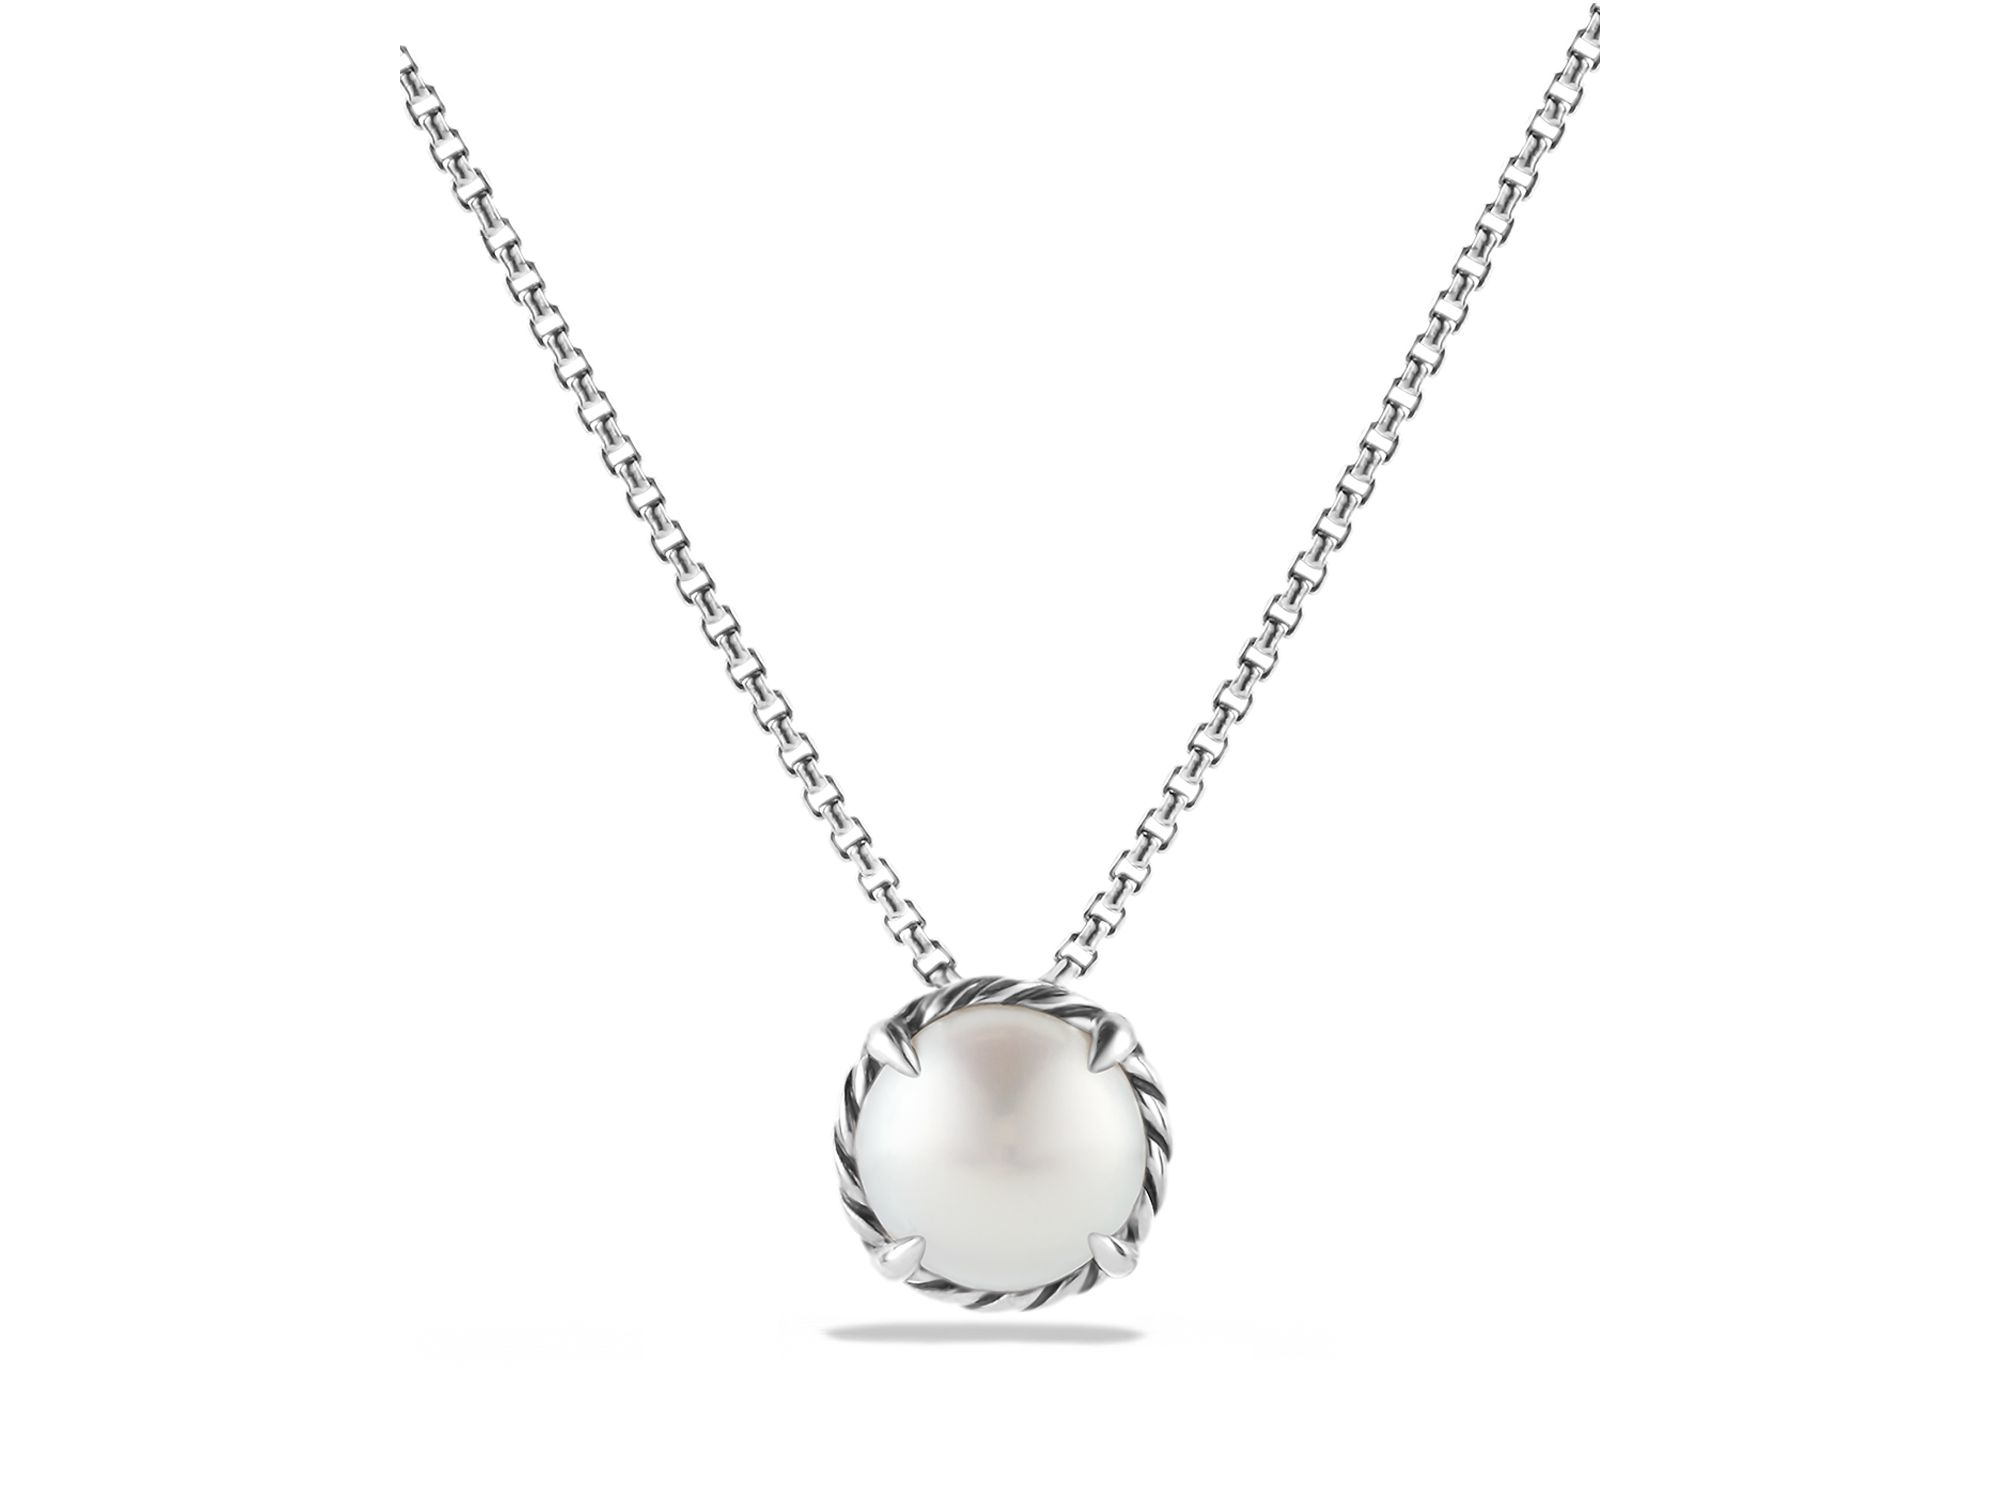 david yurman chatelaine pendant necklace with pearl in